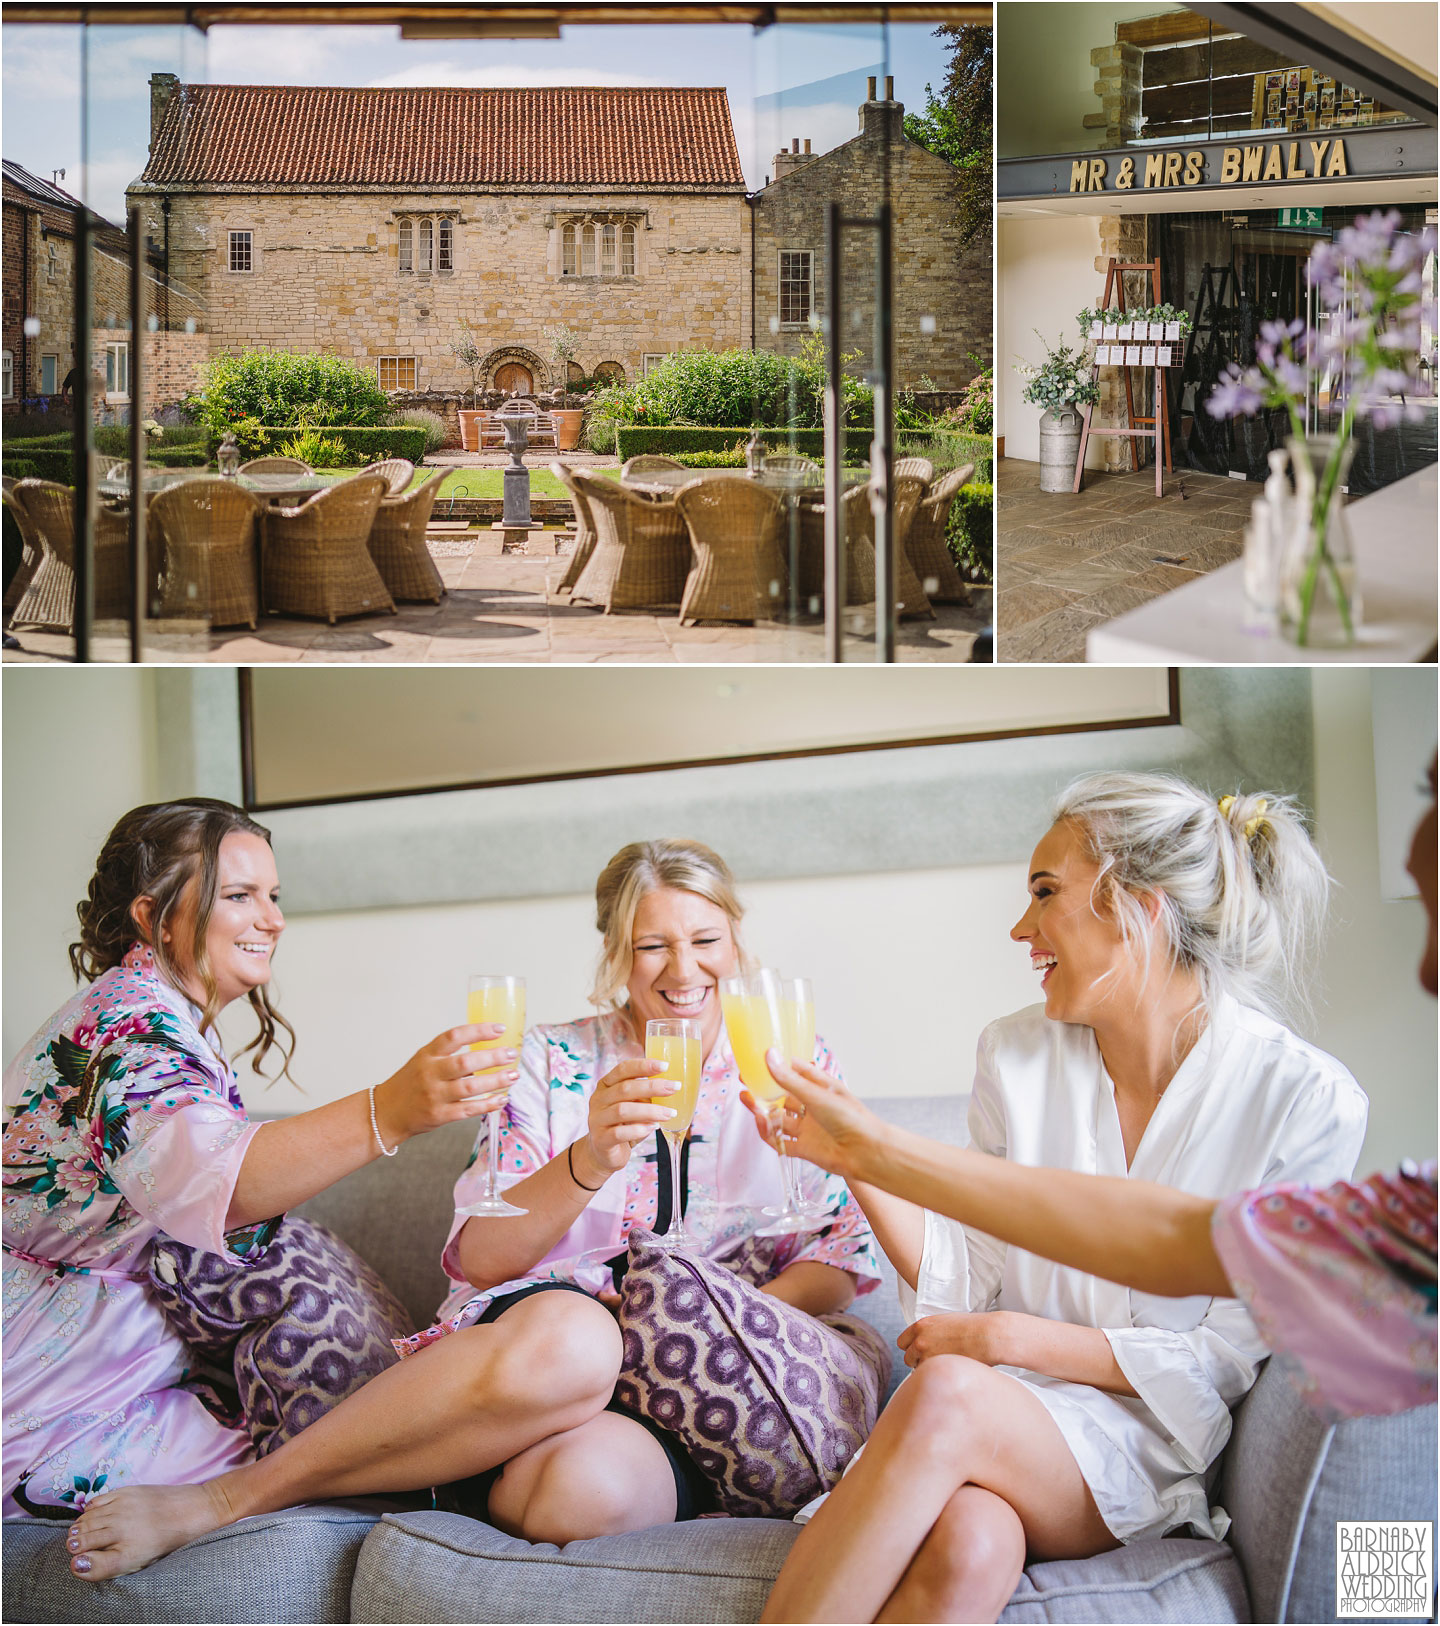 Bride and bridesmaids at Priory Cottages in Wetherby, Priory Cottages Wedding, Summer Wedding